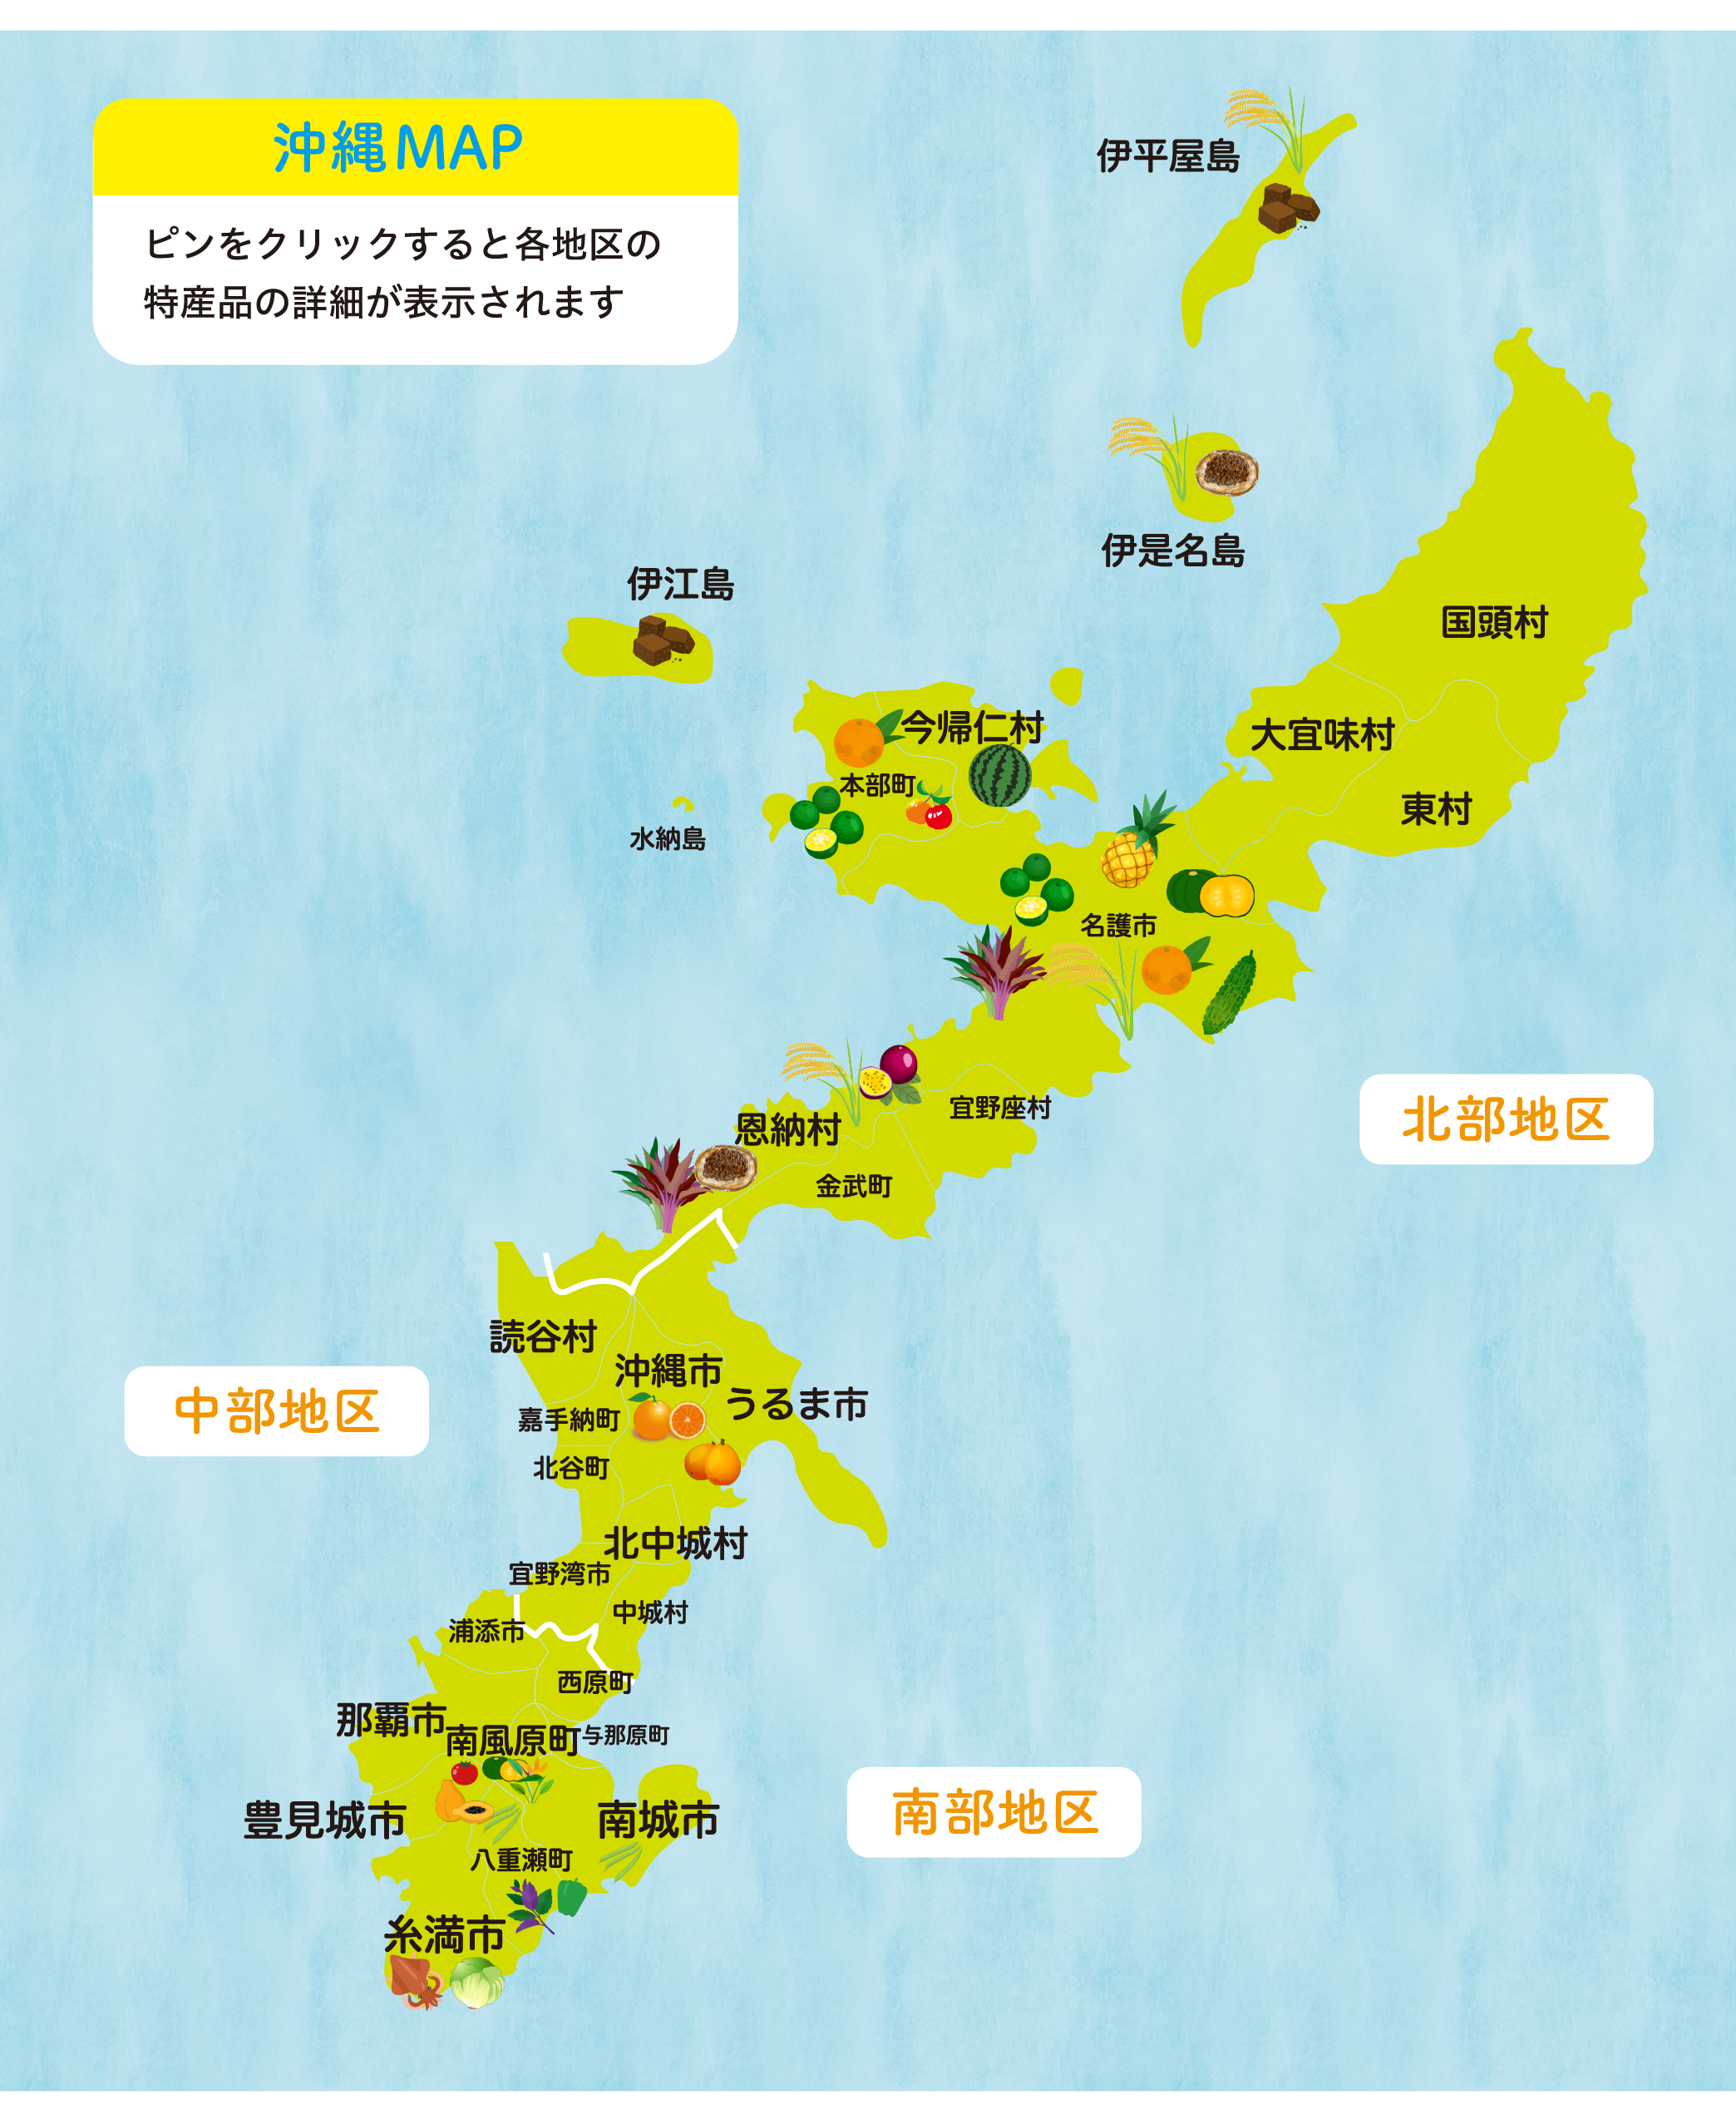 sp-map01